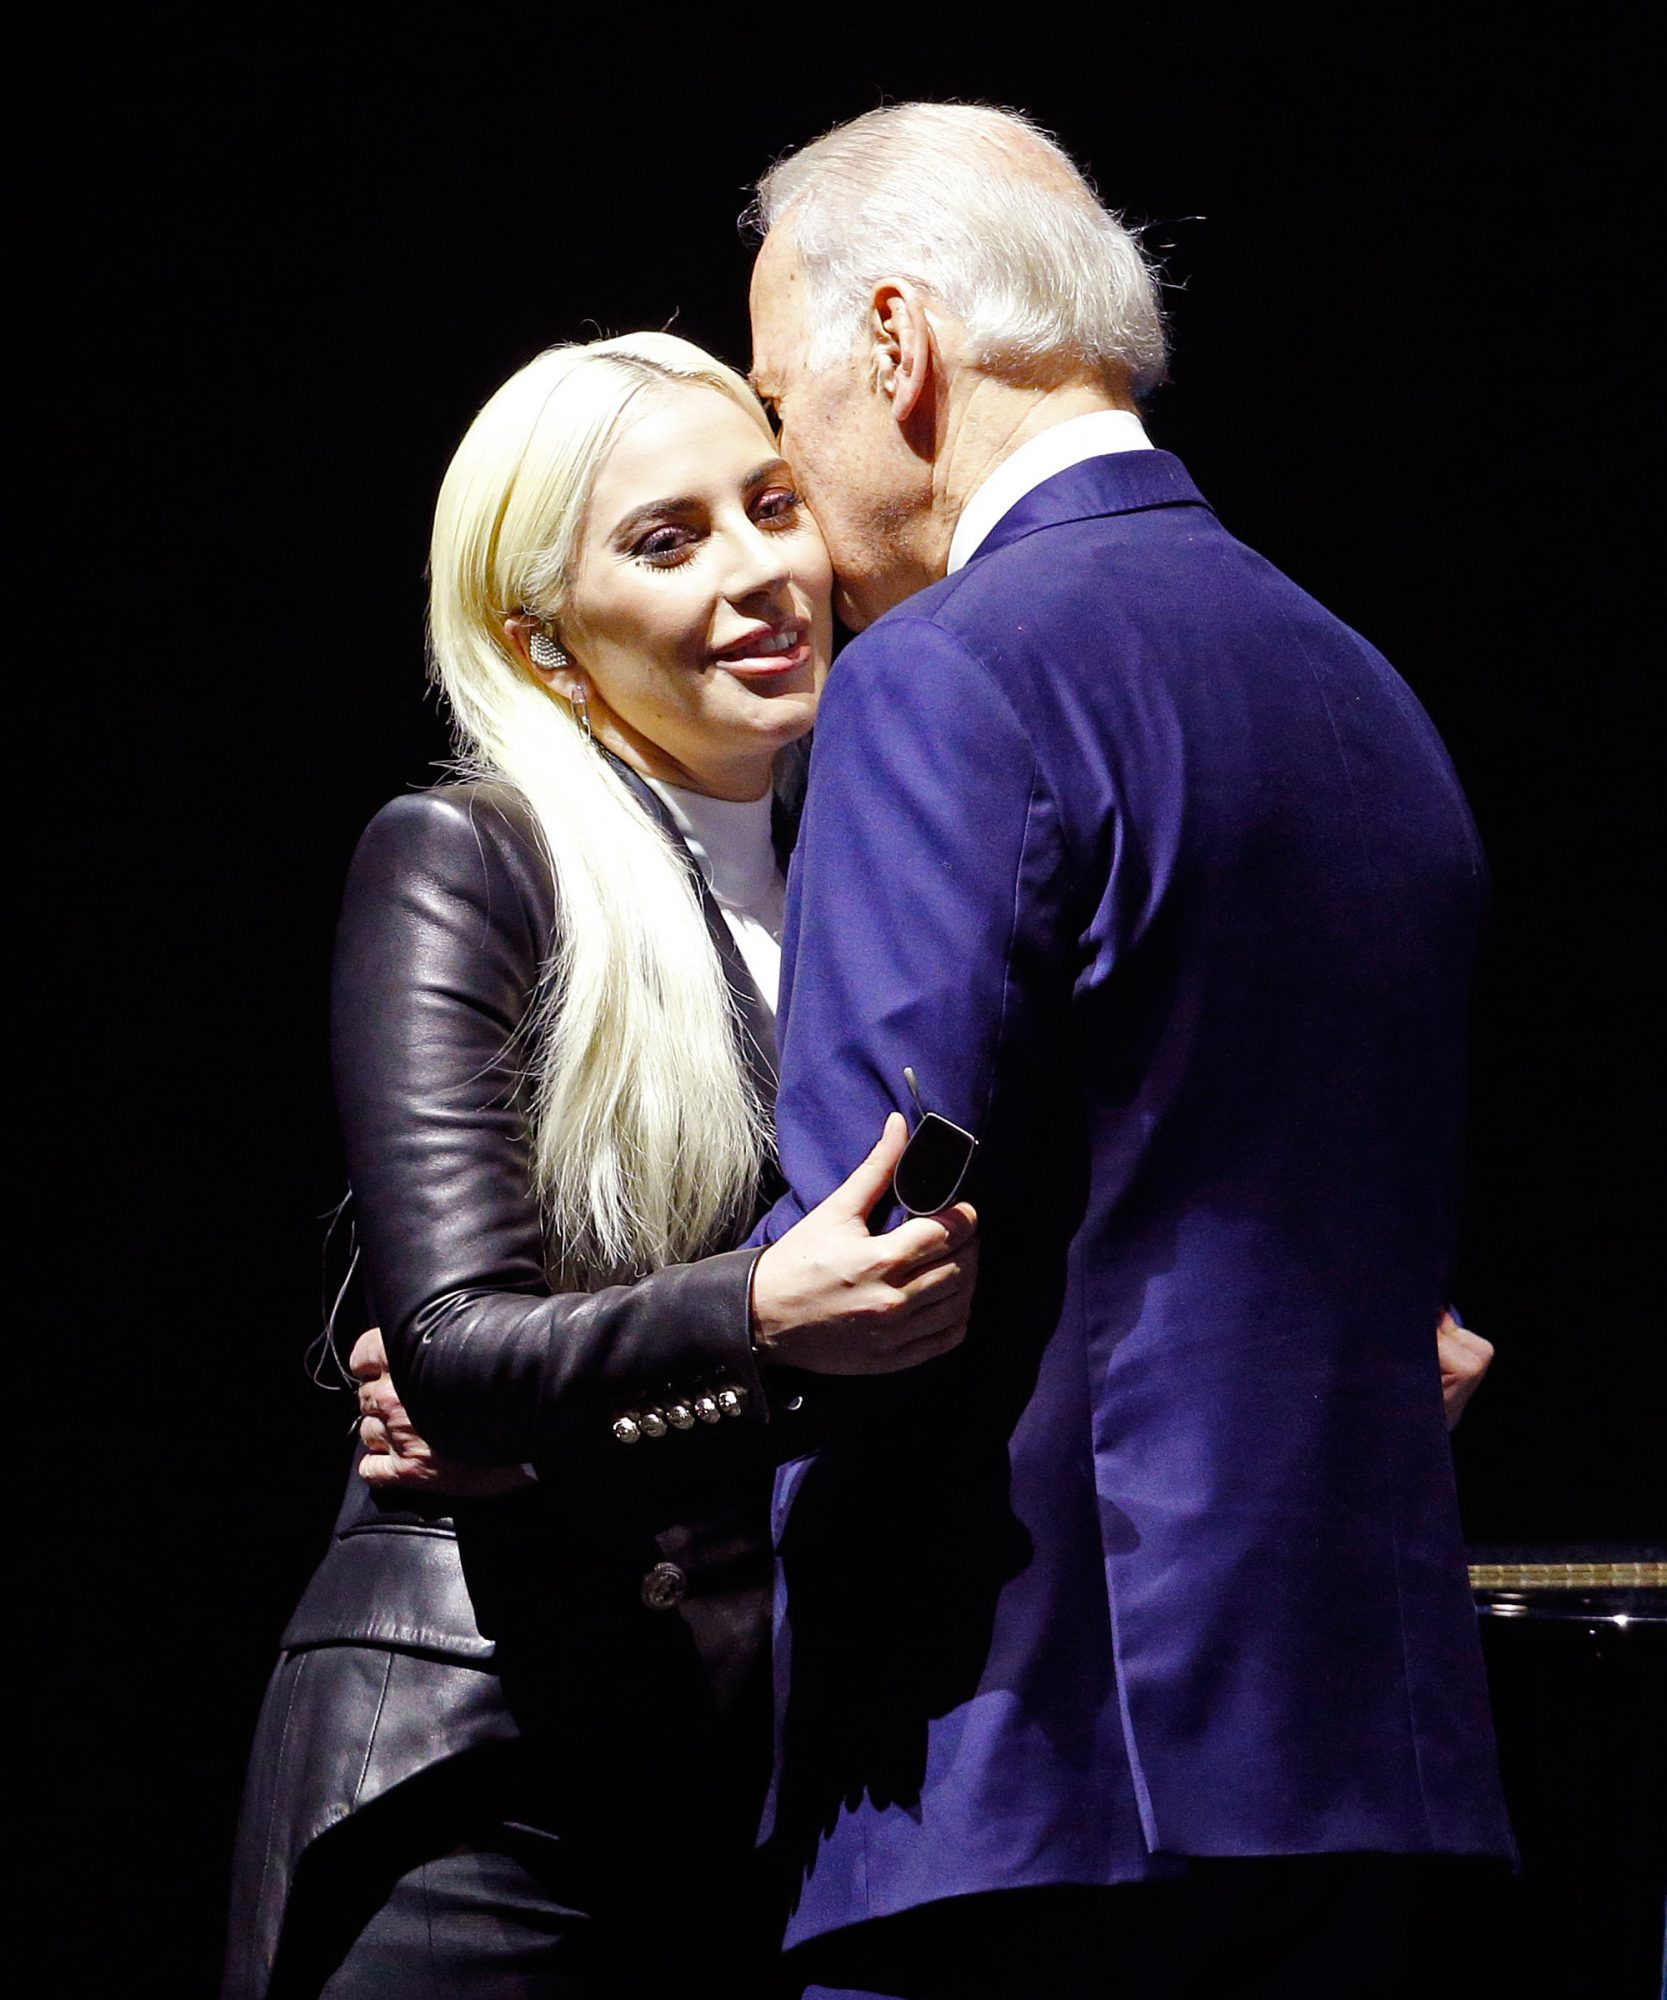 Joe Biden Loved Lady Gaga's Super Bowl Performance as Much as You Did